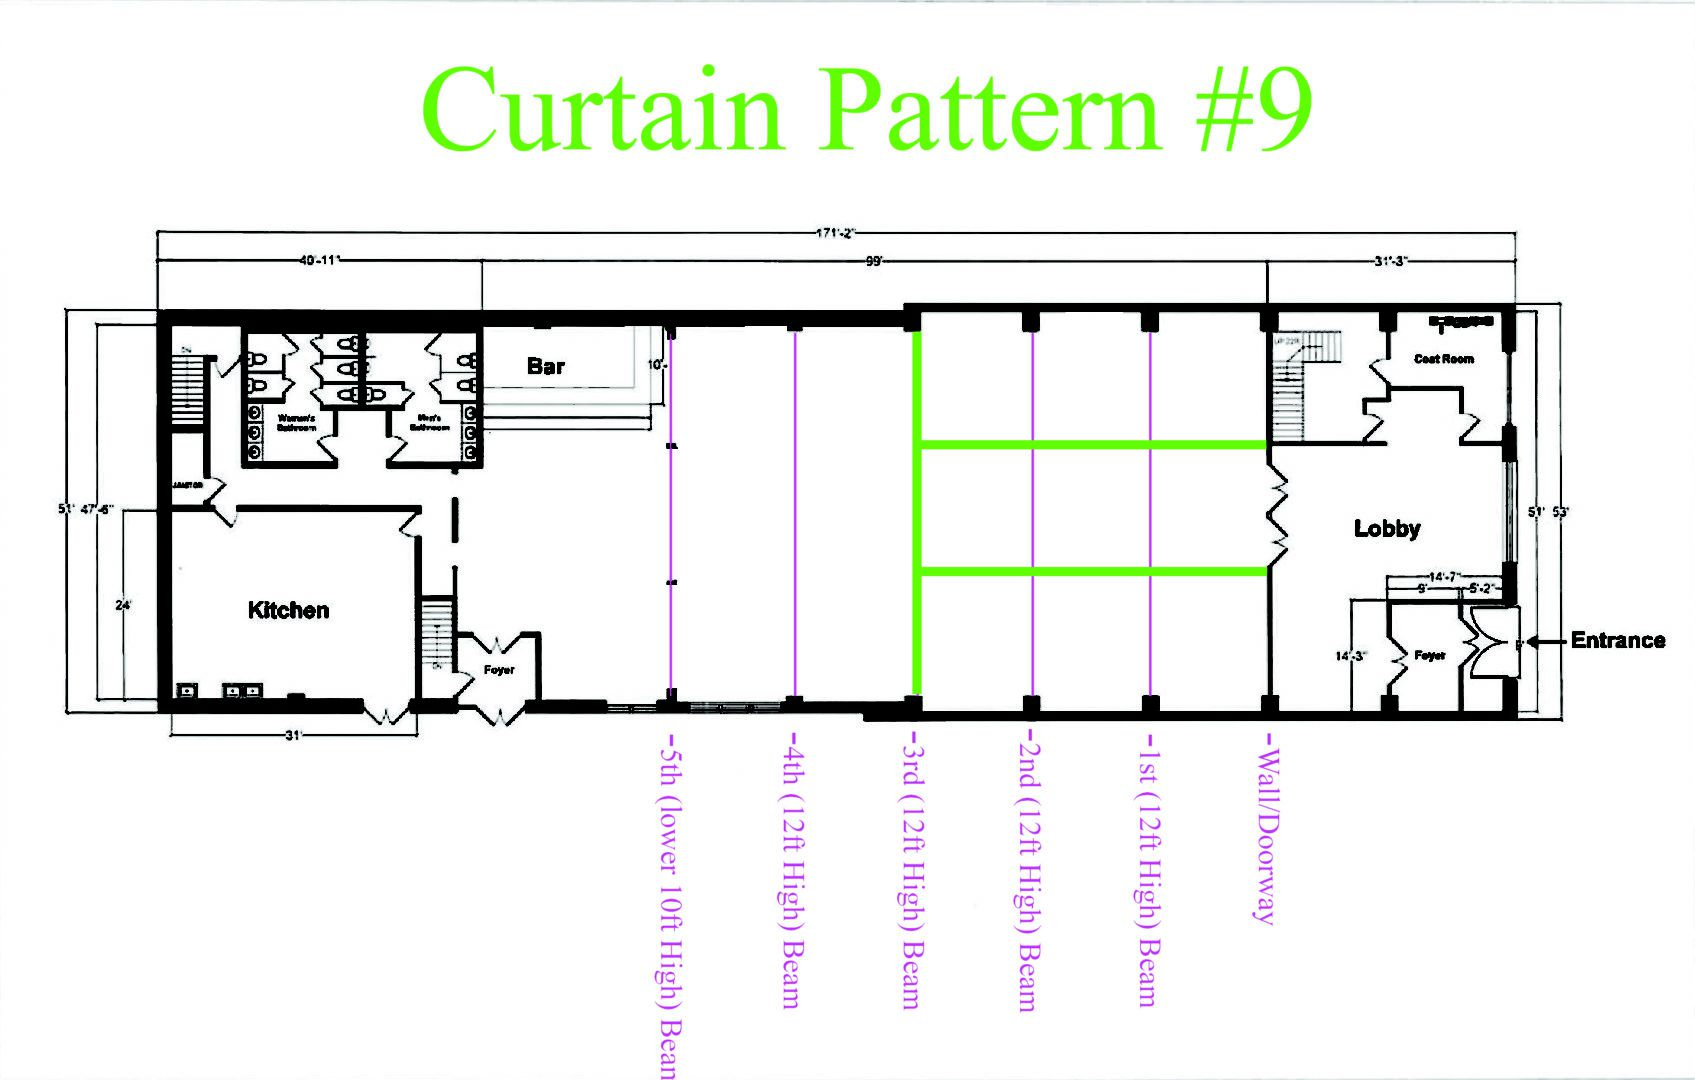 Suspended across the width of the Main Room under the 3rd Beam and Suspended the length of the room between 3rd Bean and Entrance wall on the Bar-Side of The Main Room and NON-Bar-Side of The Main Room. Sheer Curtain - Approximately $1,080 (Plus - NYC Sales Tax & Delivery)